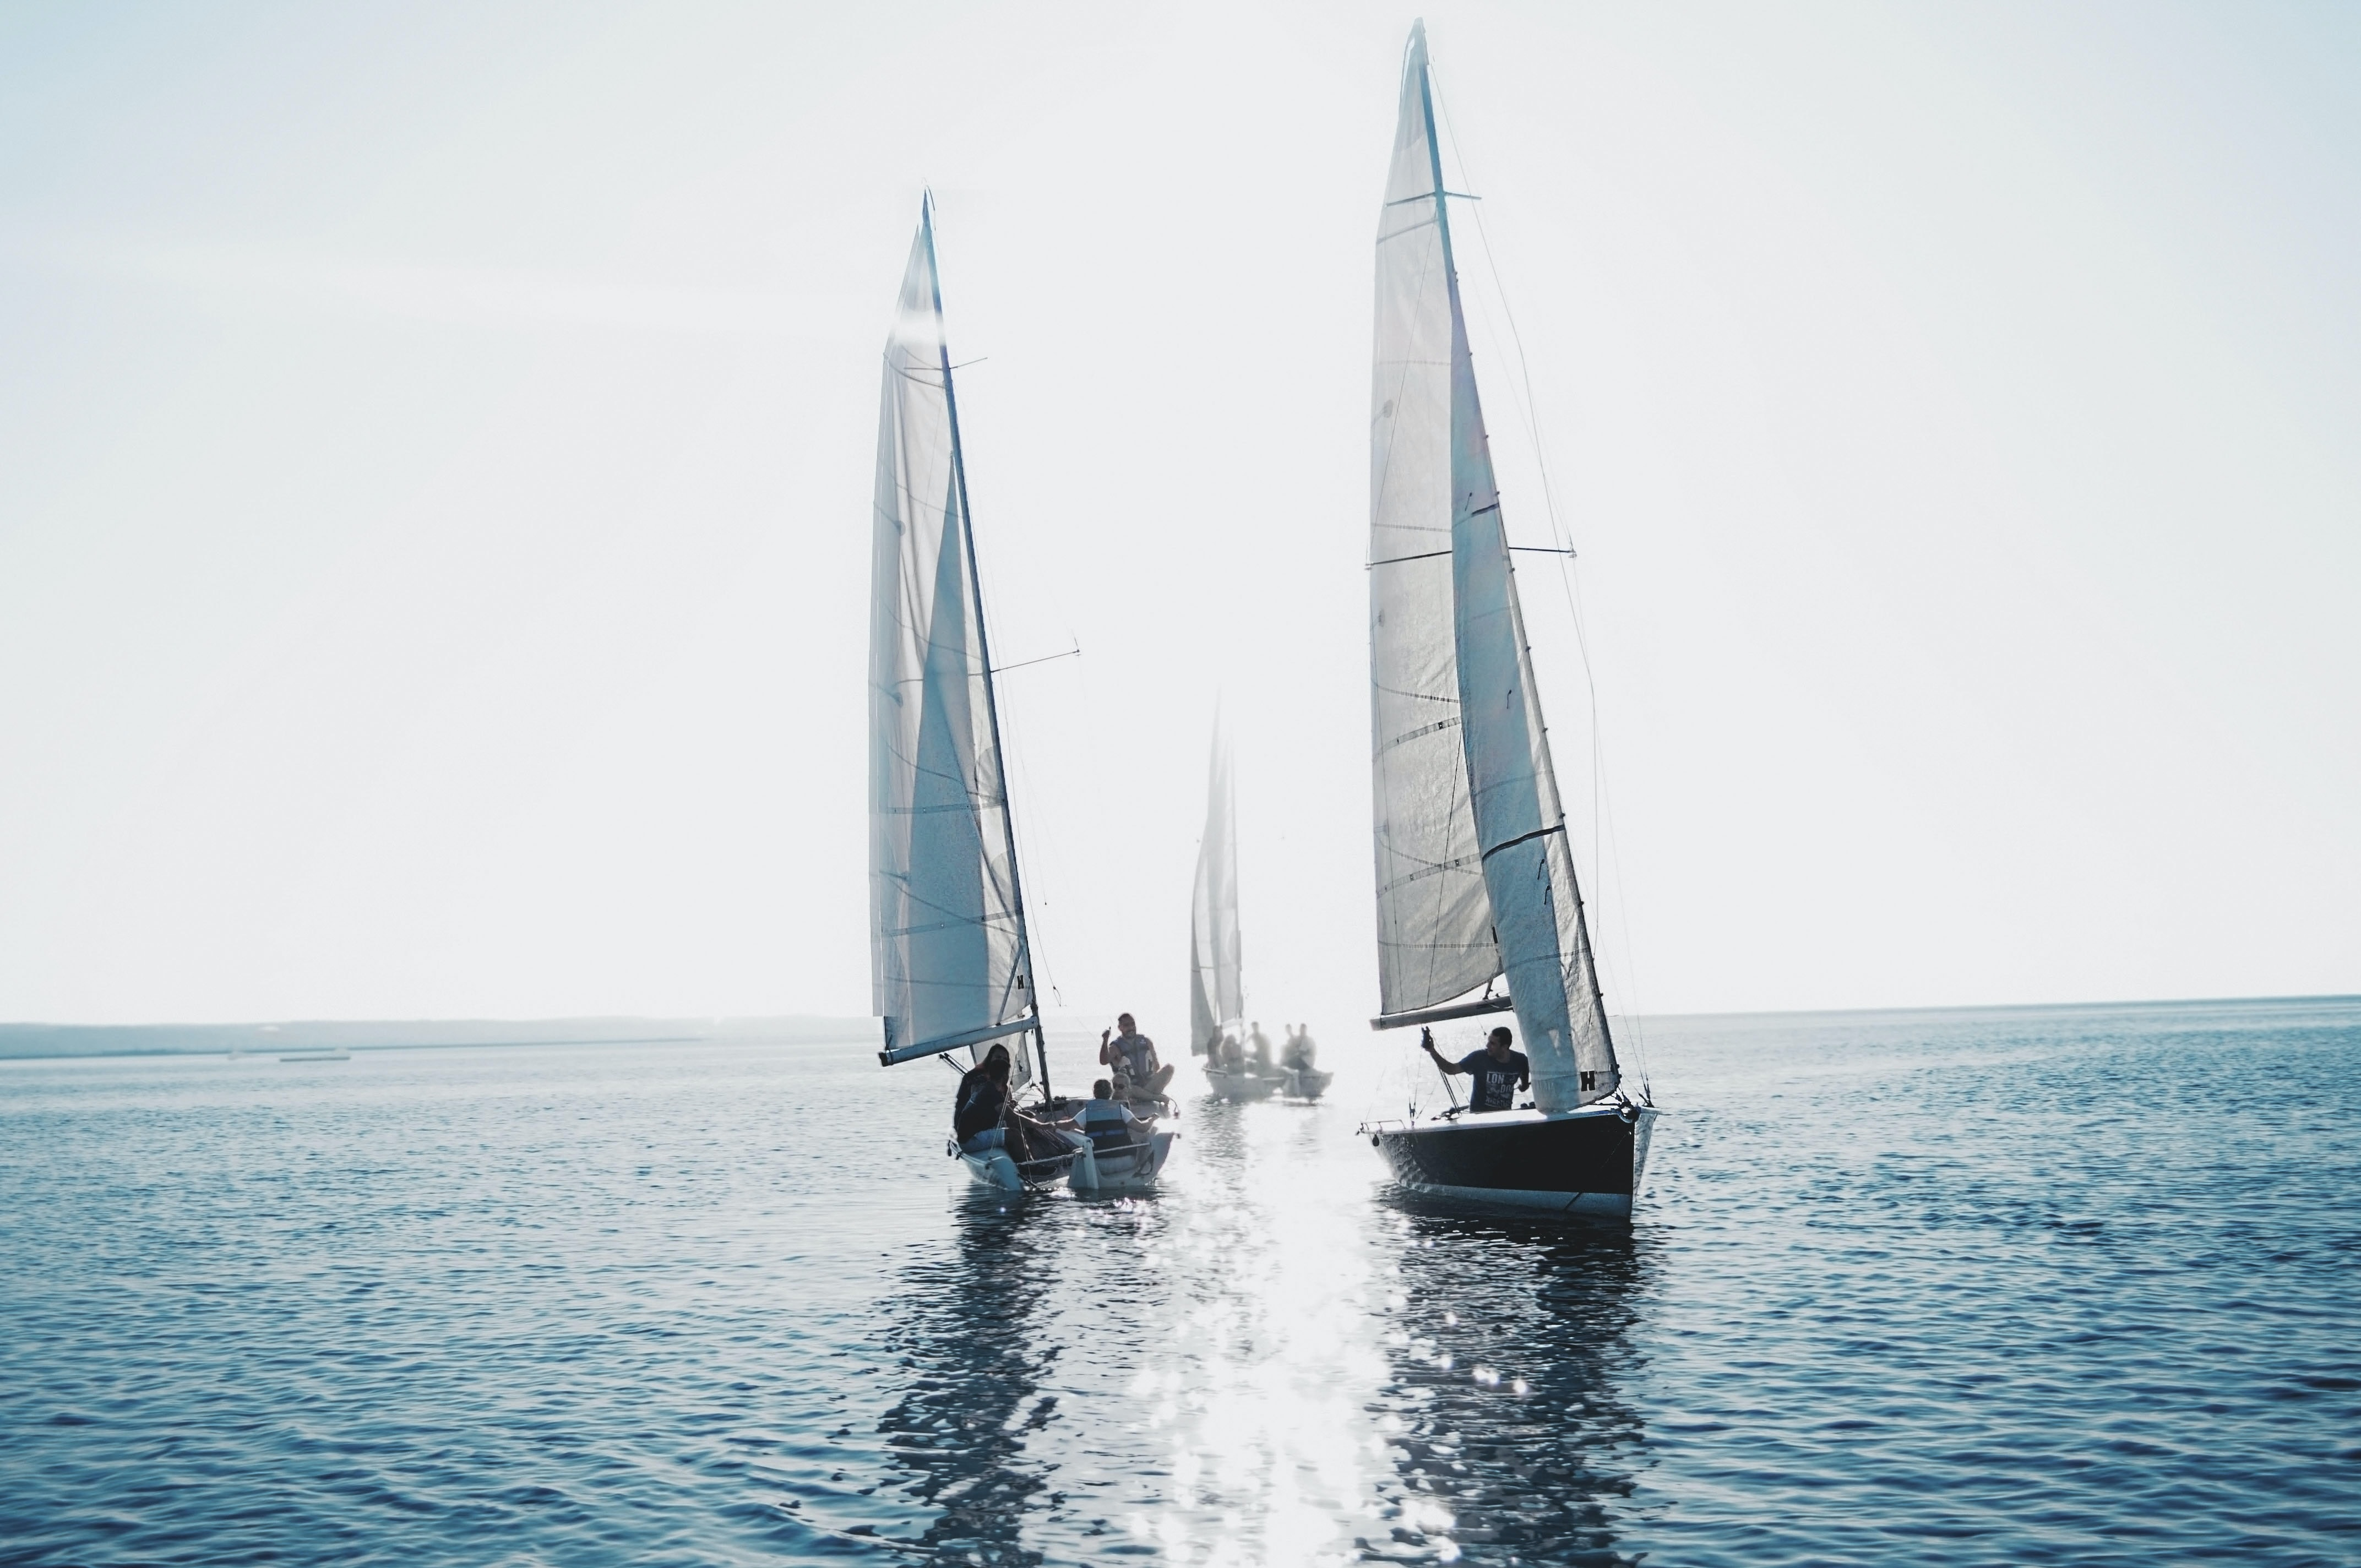 Two white sailboats side by side on a calm blue sea